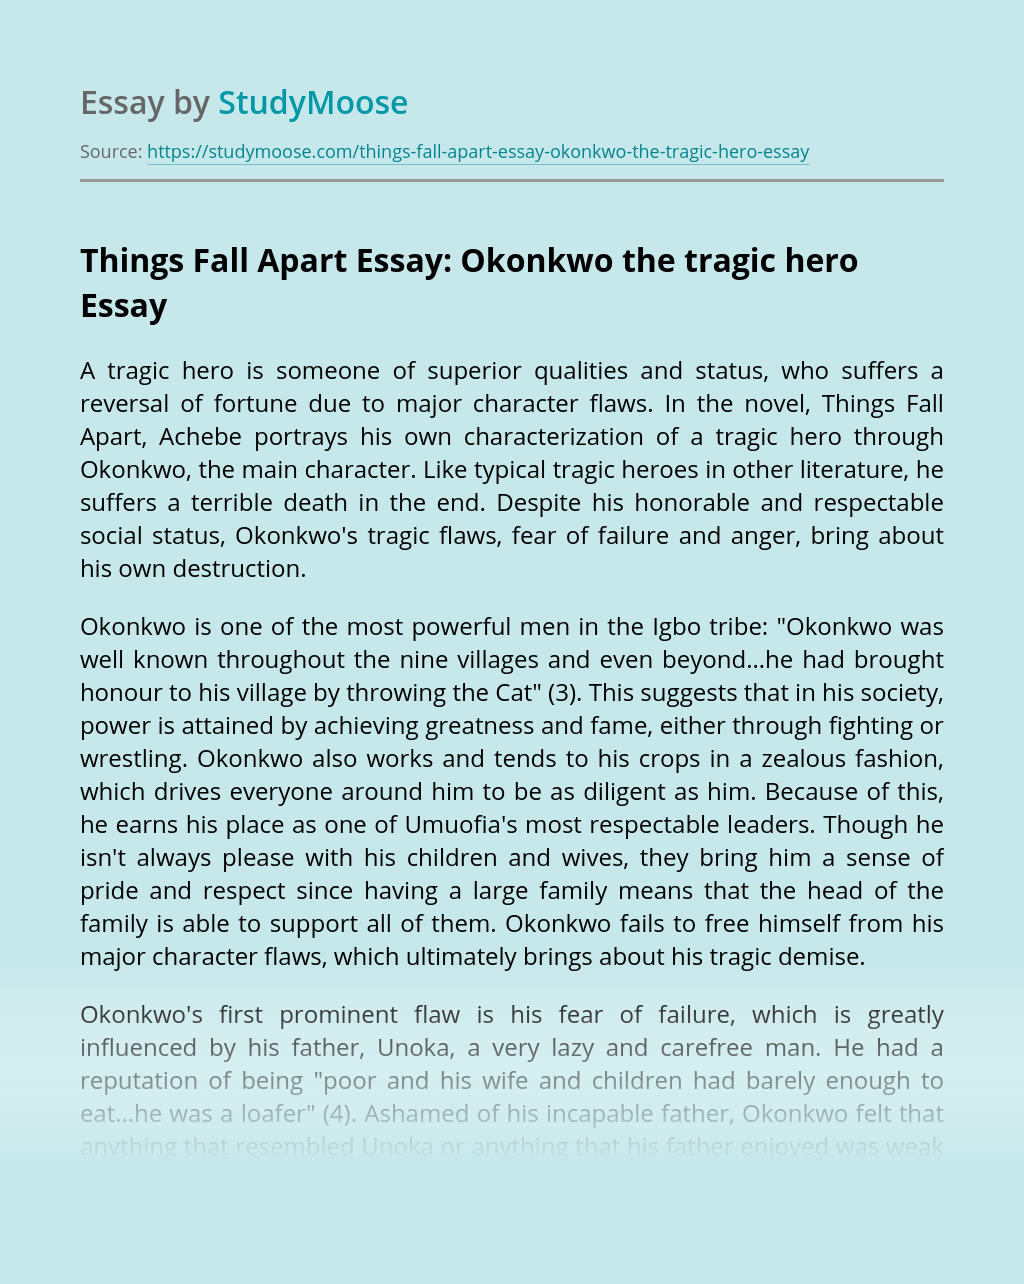 Things Fall Apart Essay: Okonkwo the tragic hero